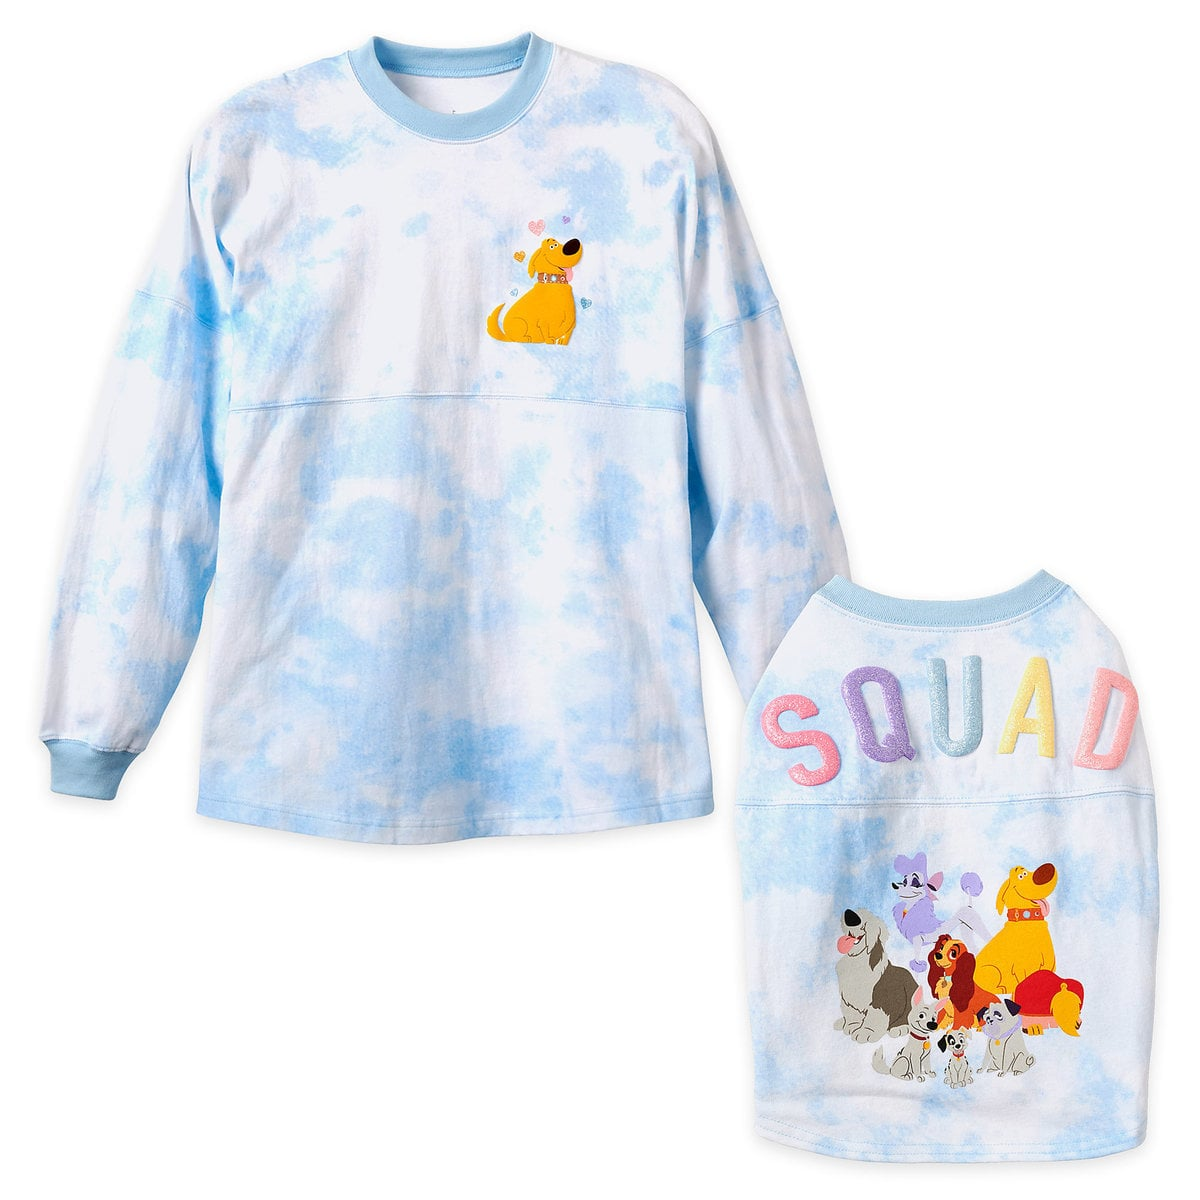 New Disney Dogs Spirit Jerseys for You AND Your Pooch! #DisneyStyle 2